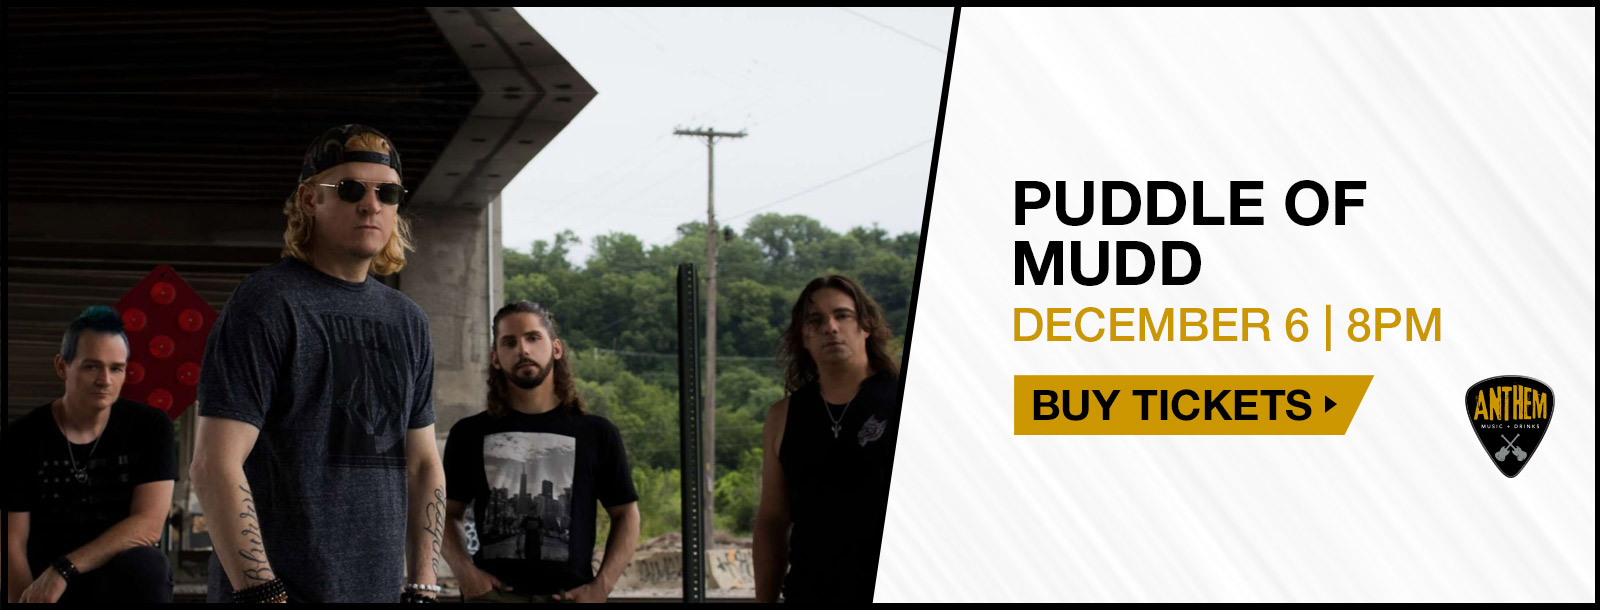 puddle of mudd anthem sioux city events